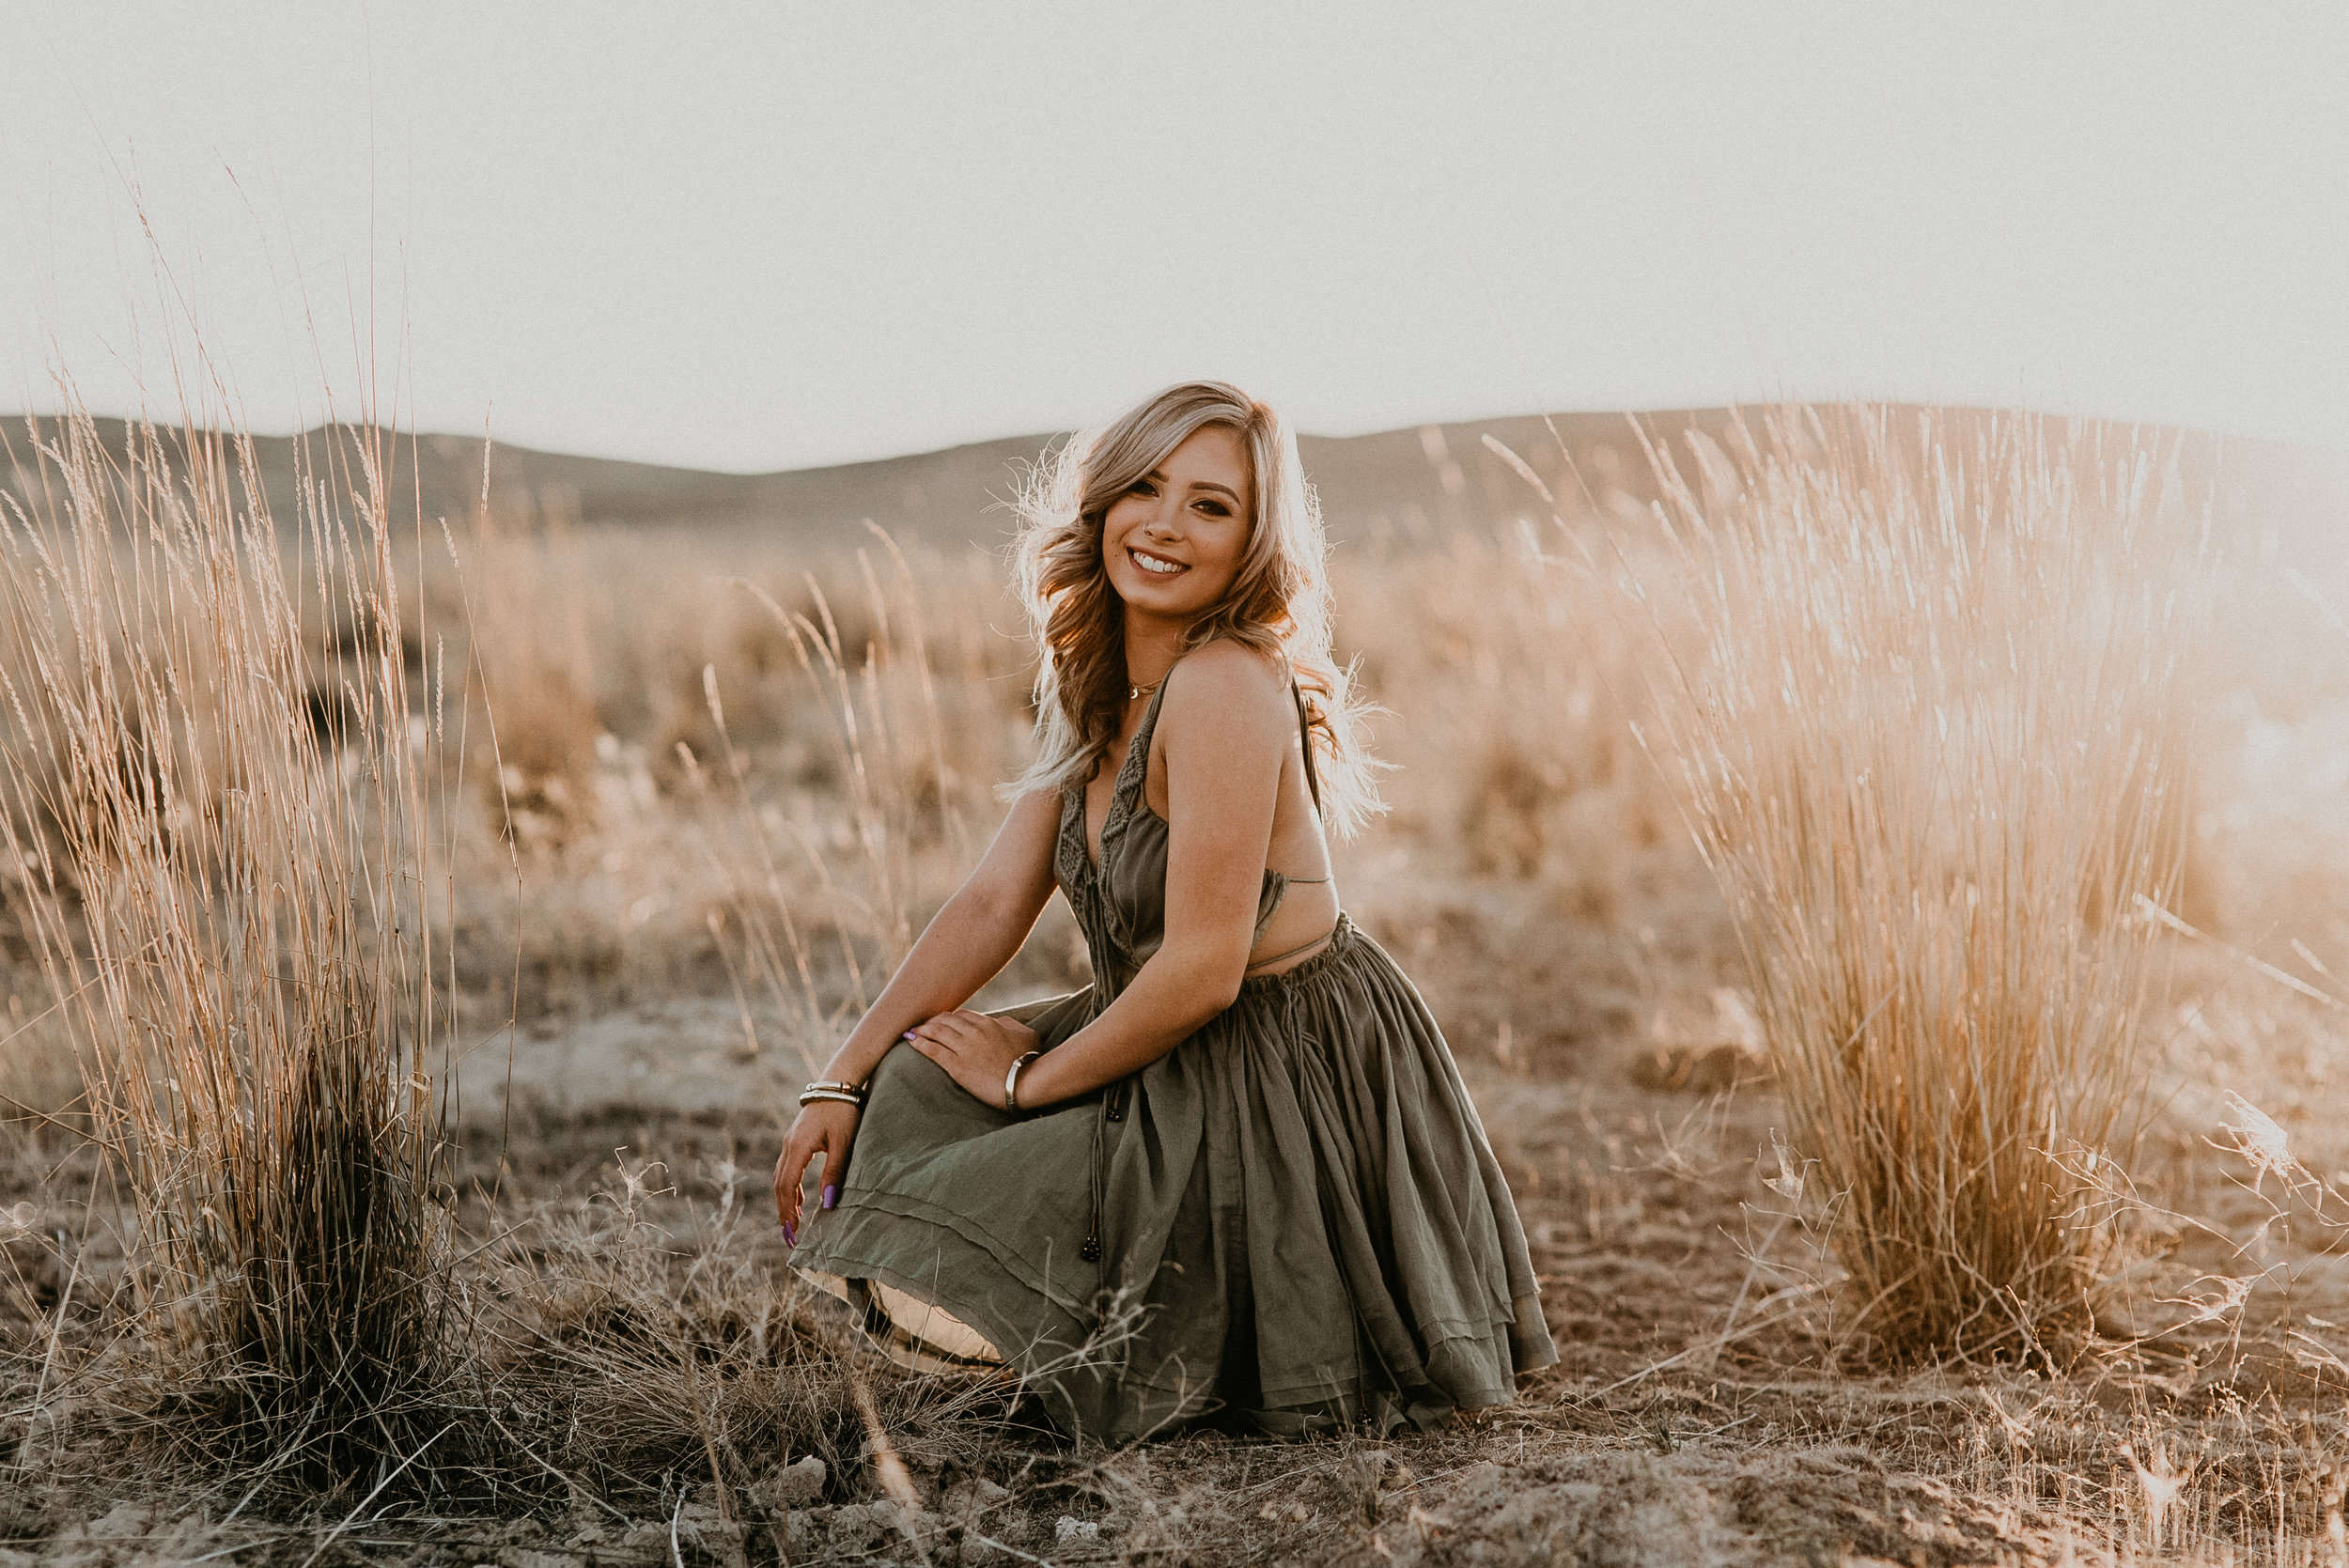 Boise Idaho Senior Photographer Boho Senior Pictures Summer Fun Senior Session Styling Ideas Tips Advice Senior Girl Fun Portraits Free People Summer Dress